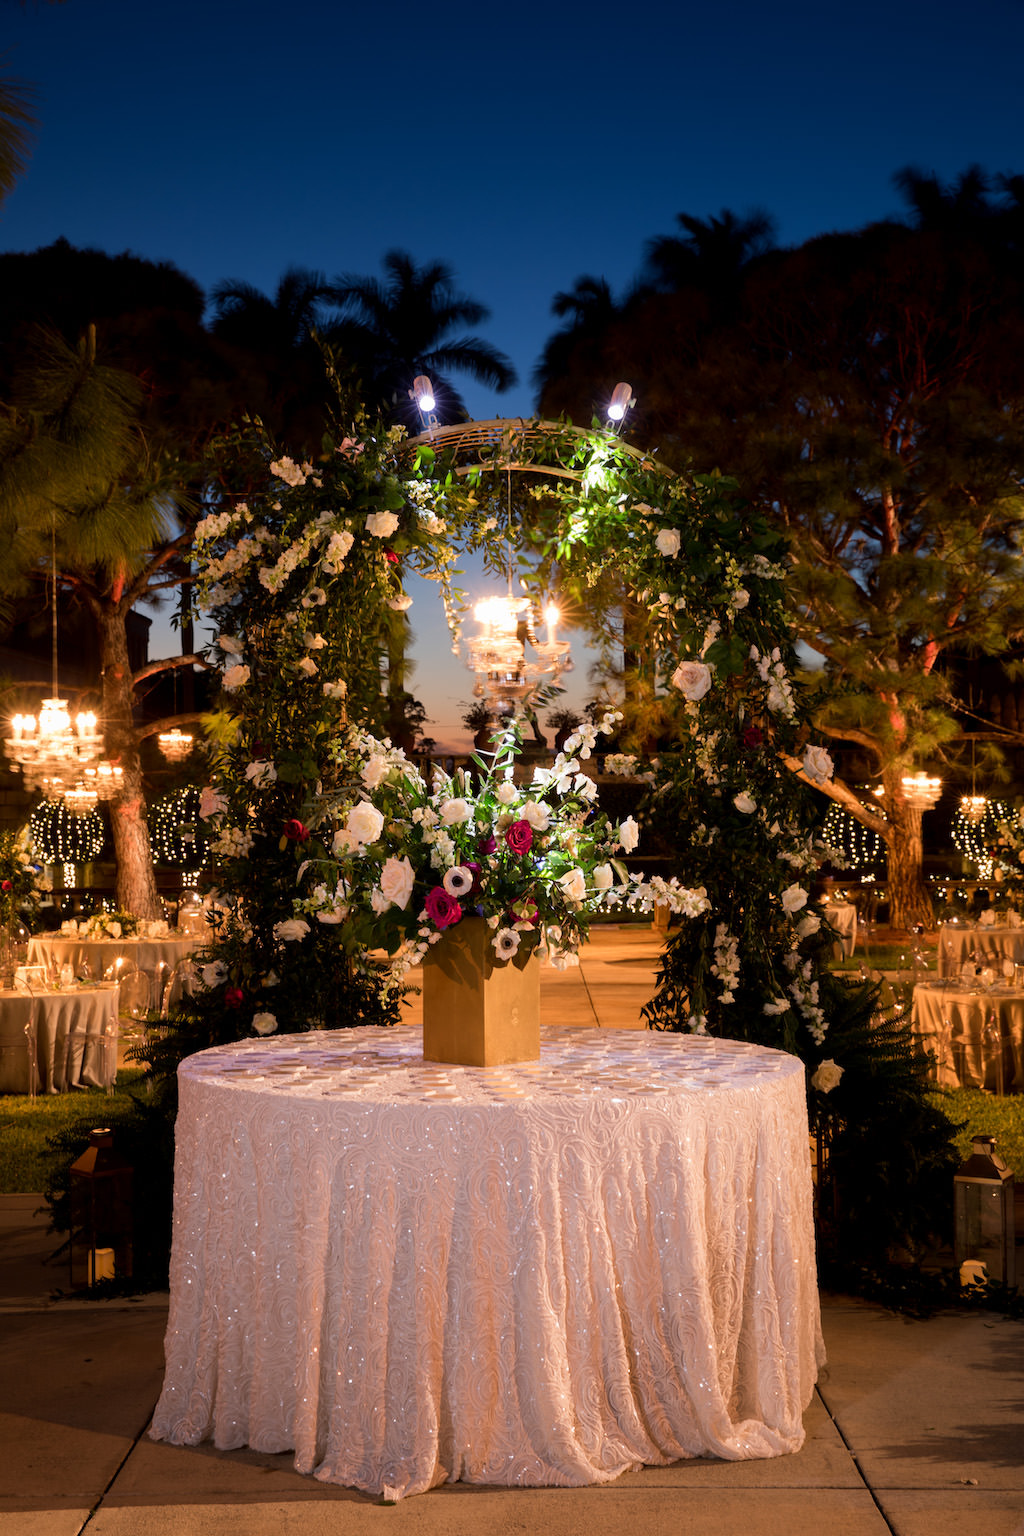 Nighttime Wedding Outdoor Garden Courtyard Wedding Reception Decor, Round Table with Glitter Blush Pink Linen, Gold Vase with Whimsical Organic Garden Greenery, Ivory, White, Red Floral Centerpiece | Sarasota Wedding Venue Ringling Museum | Tampa Bay Wedding Planner NK Weddings